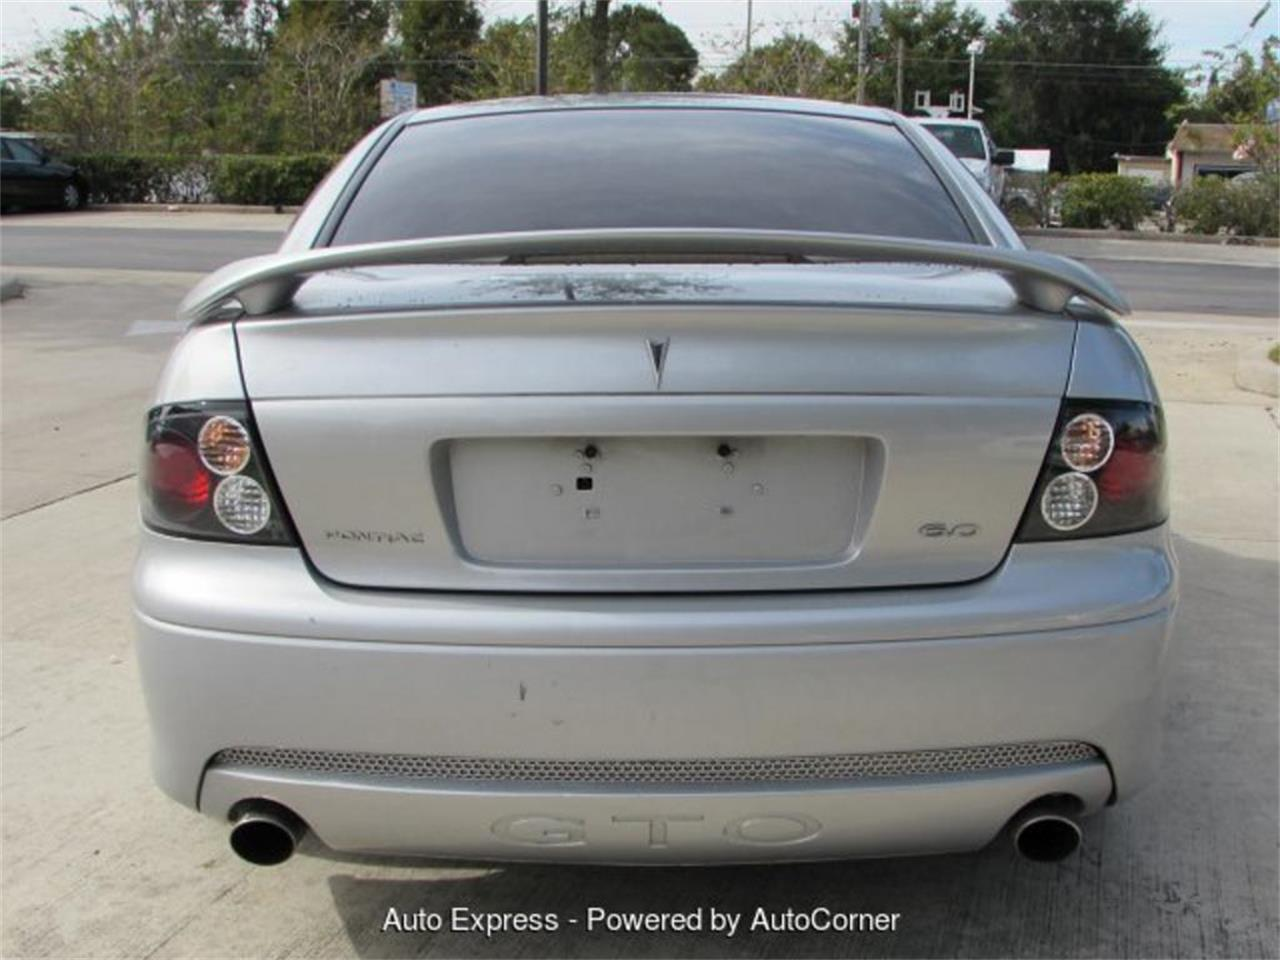 Large Picture of 2005 Pontiac GTO located in Florida - $13,999.00 Offered by Auto Express - Q2A5